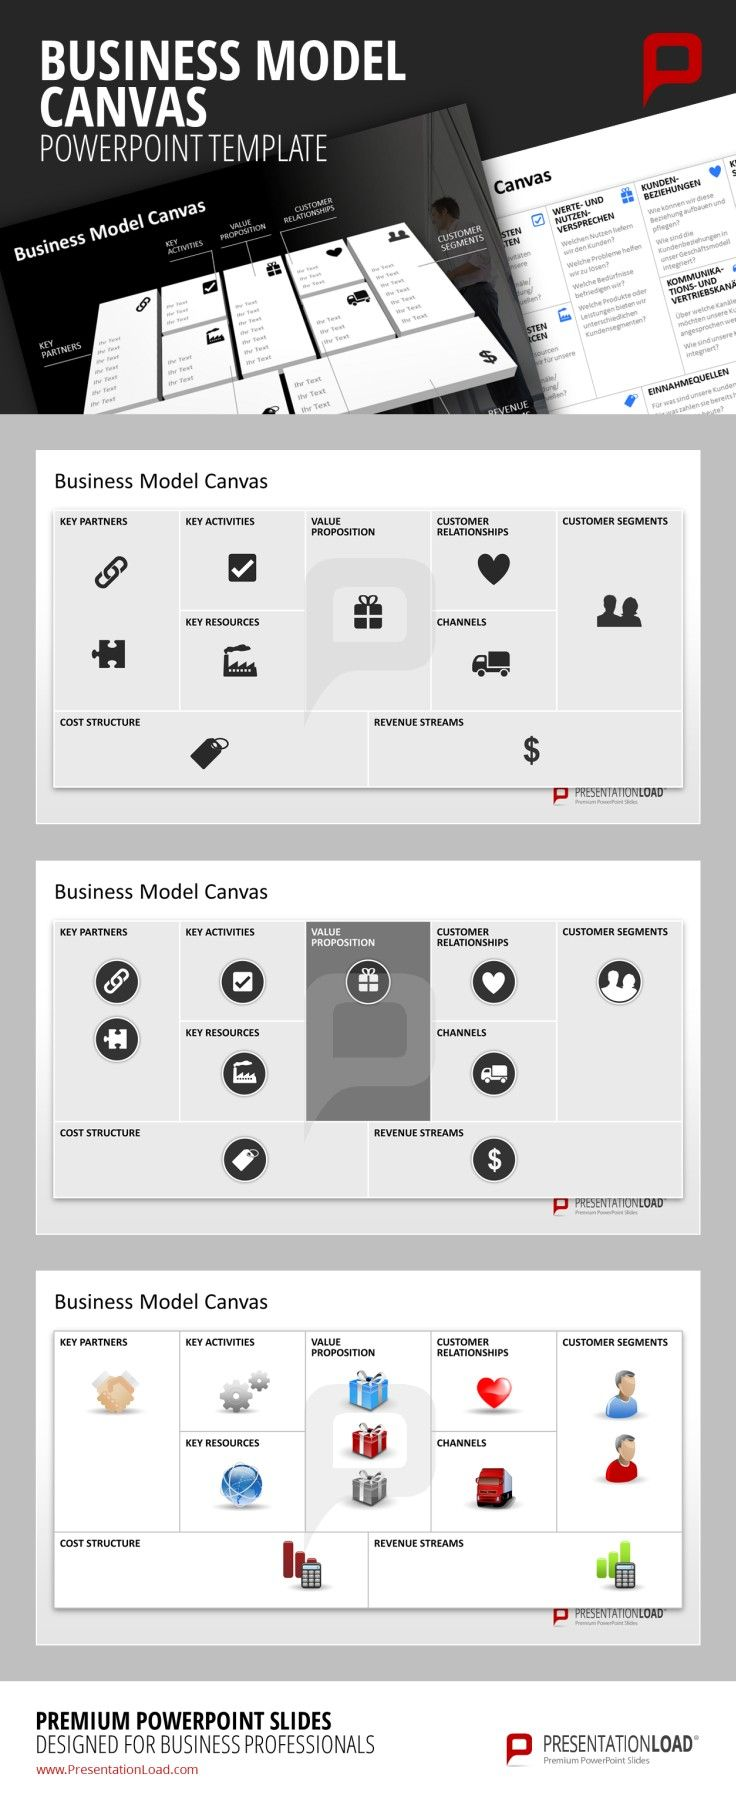 37 best business model canvas powerpoint templates images on business model canvas powerpoint template the several business model canvas templates for powerpoint come in different designs in flat design accmission Image collections